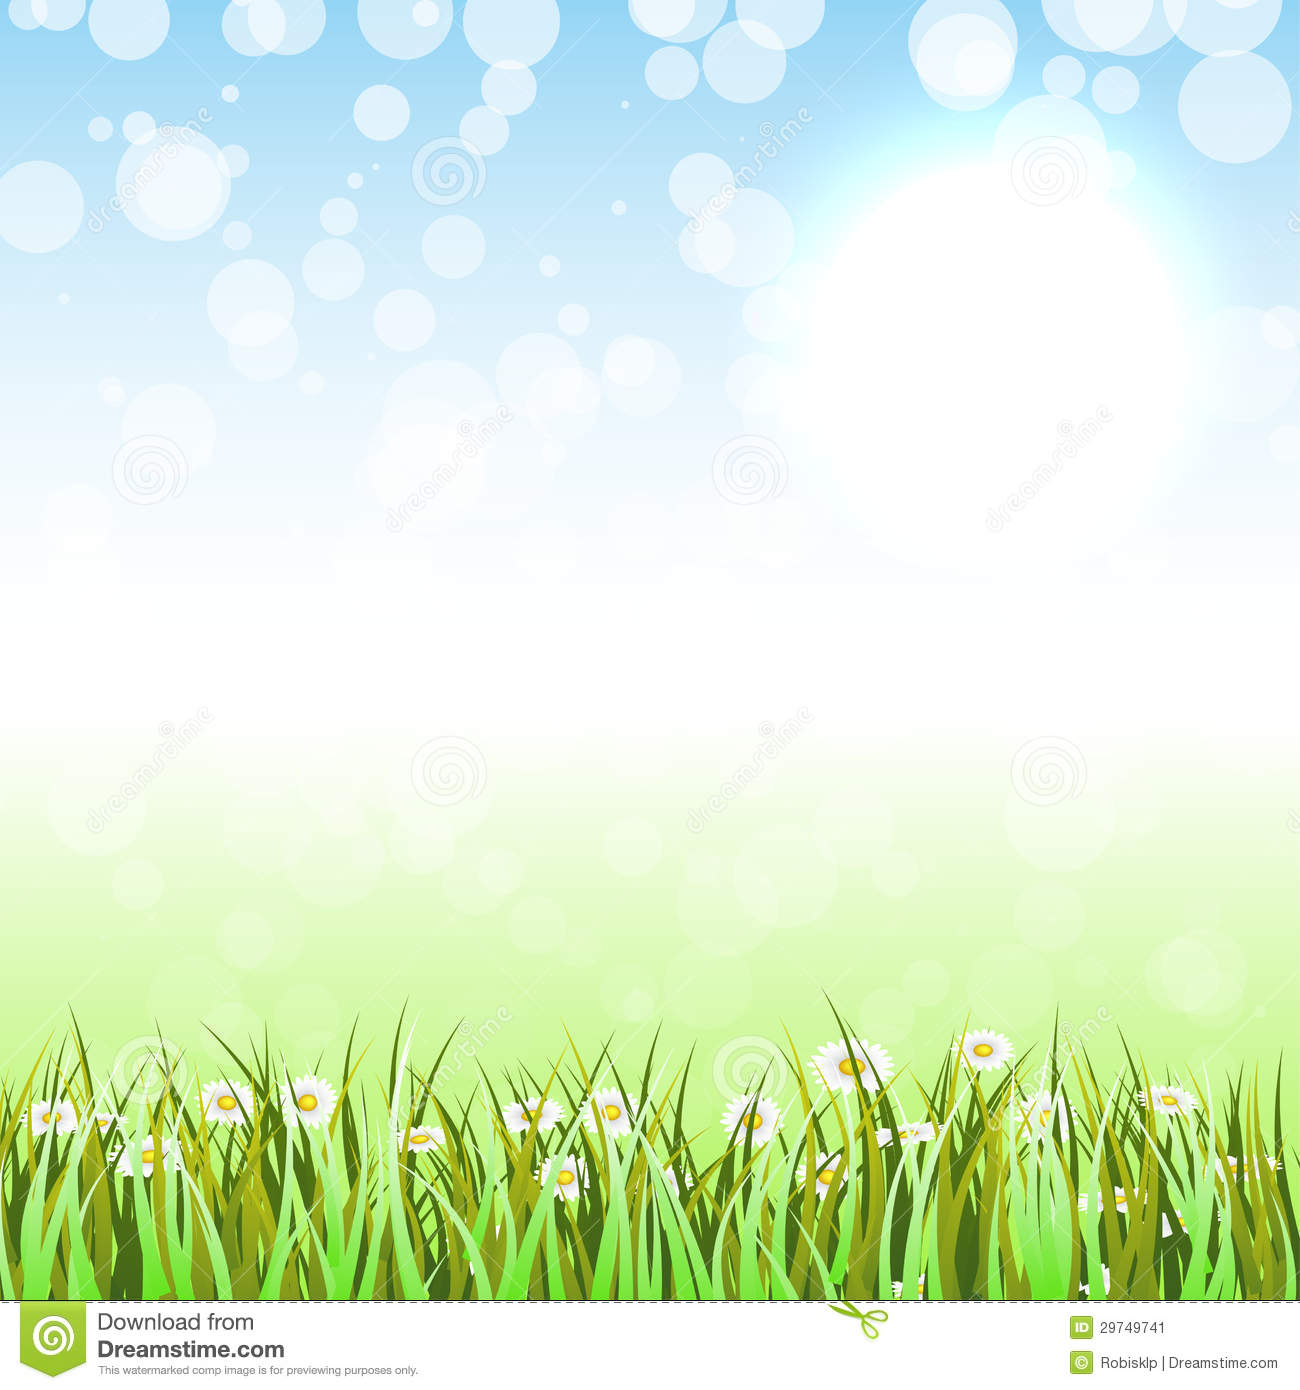 Spring Background Clipart - Clipart Kid